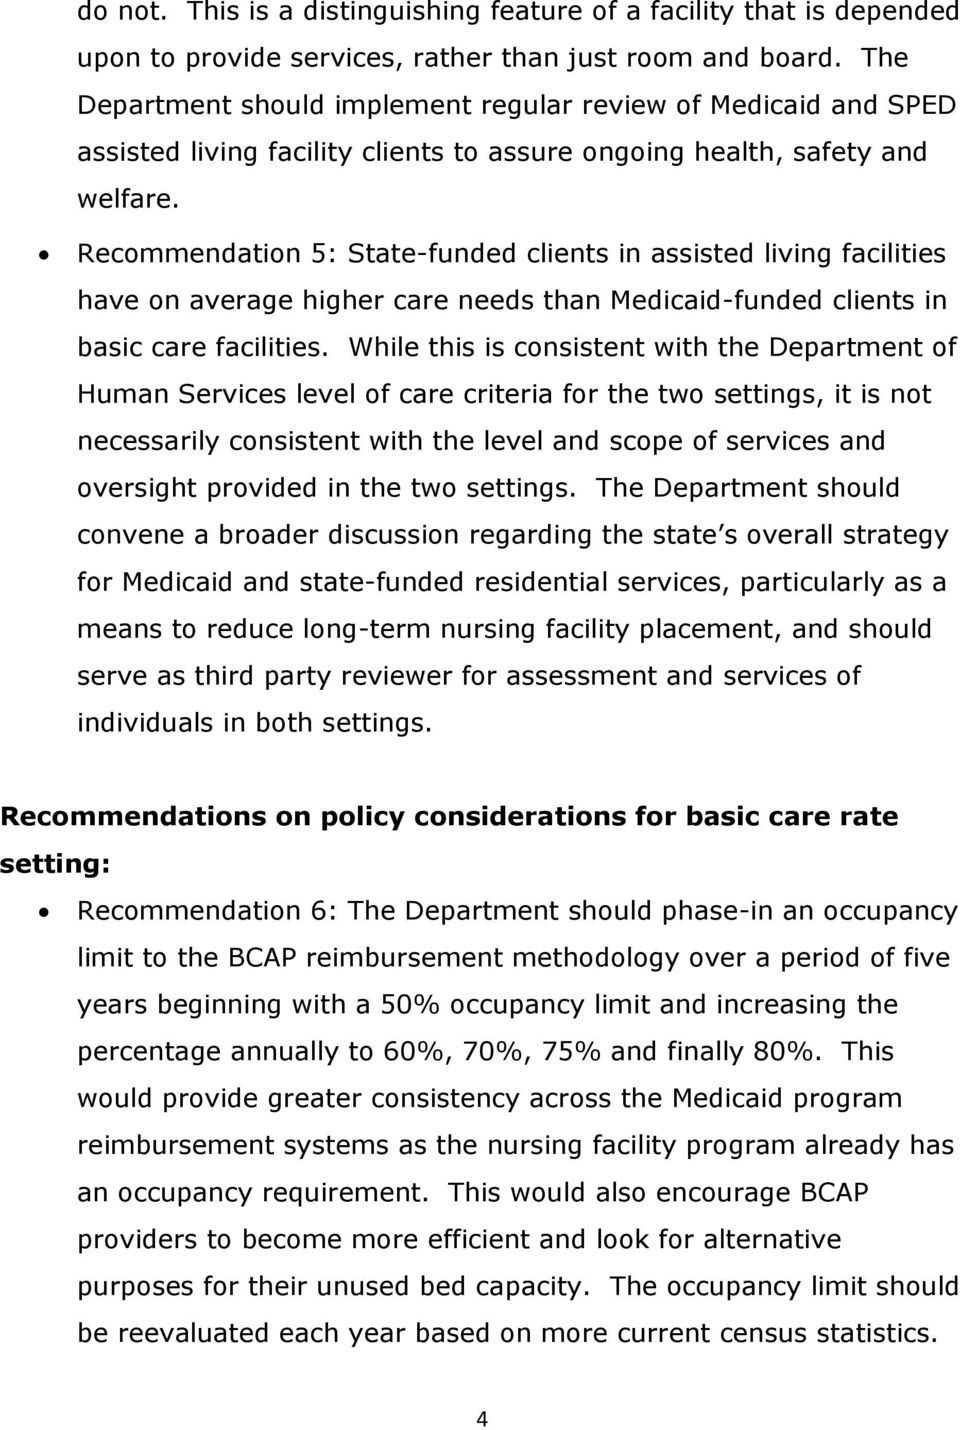 Recommendation 5: State-funded clients in assisted living facilities have on average higher care needs than Medicaid-funded clients in basic care facilities.